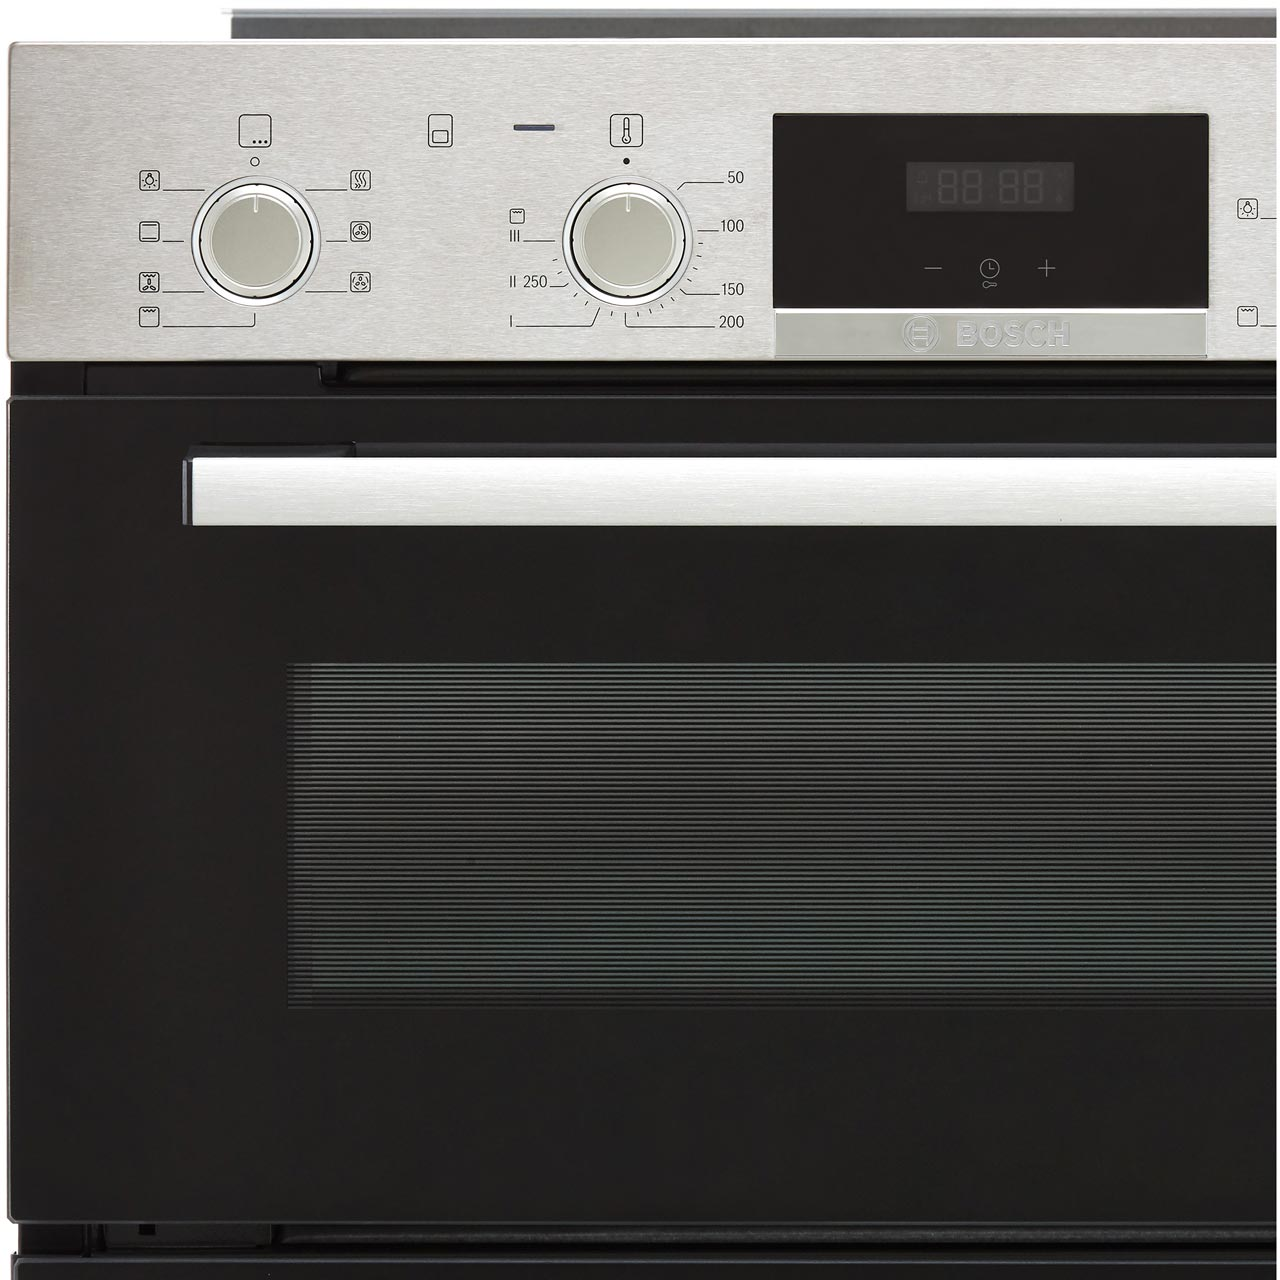 hight resolution of bosch microwave wiring diagram